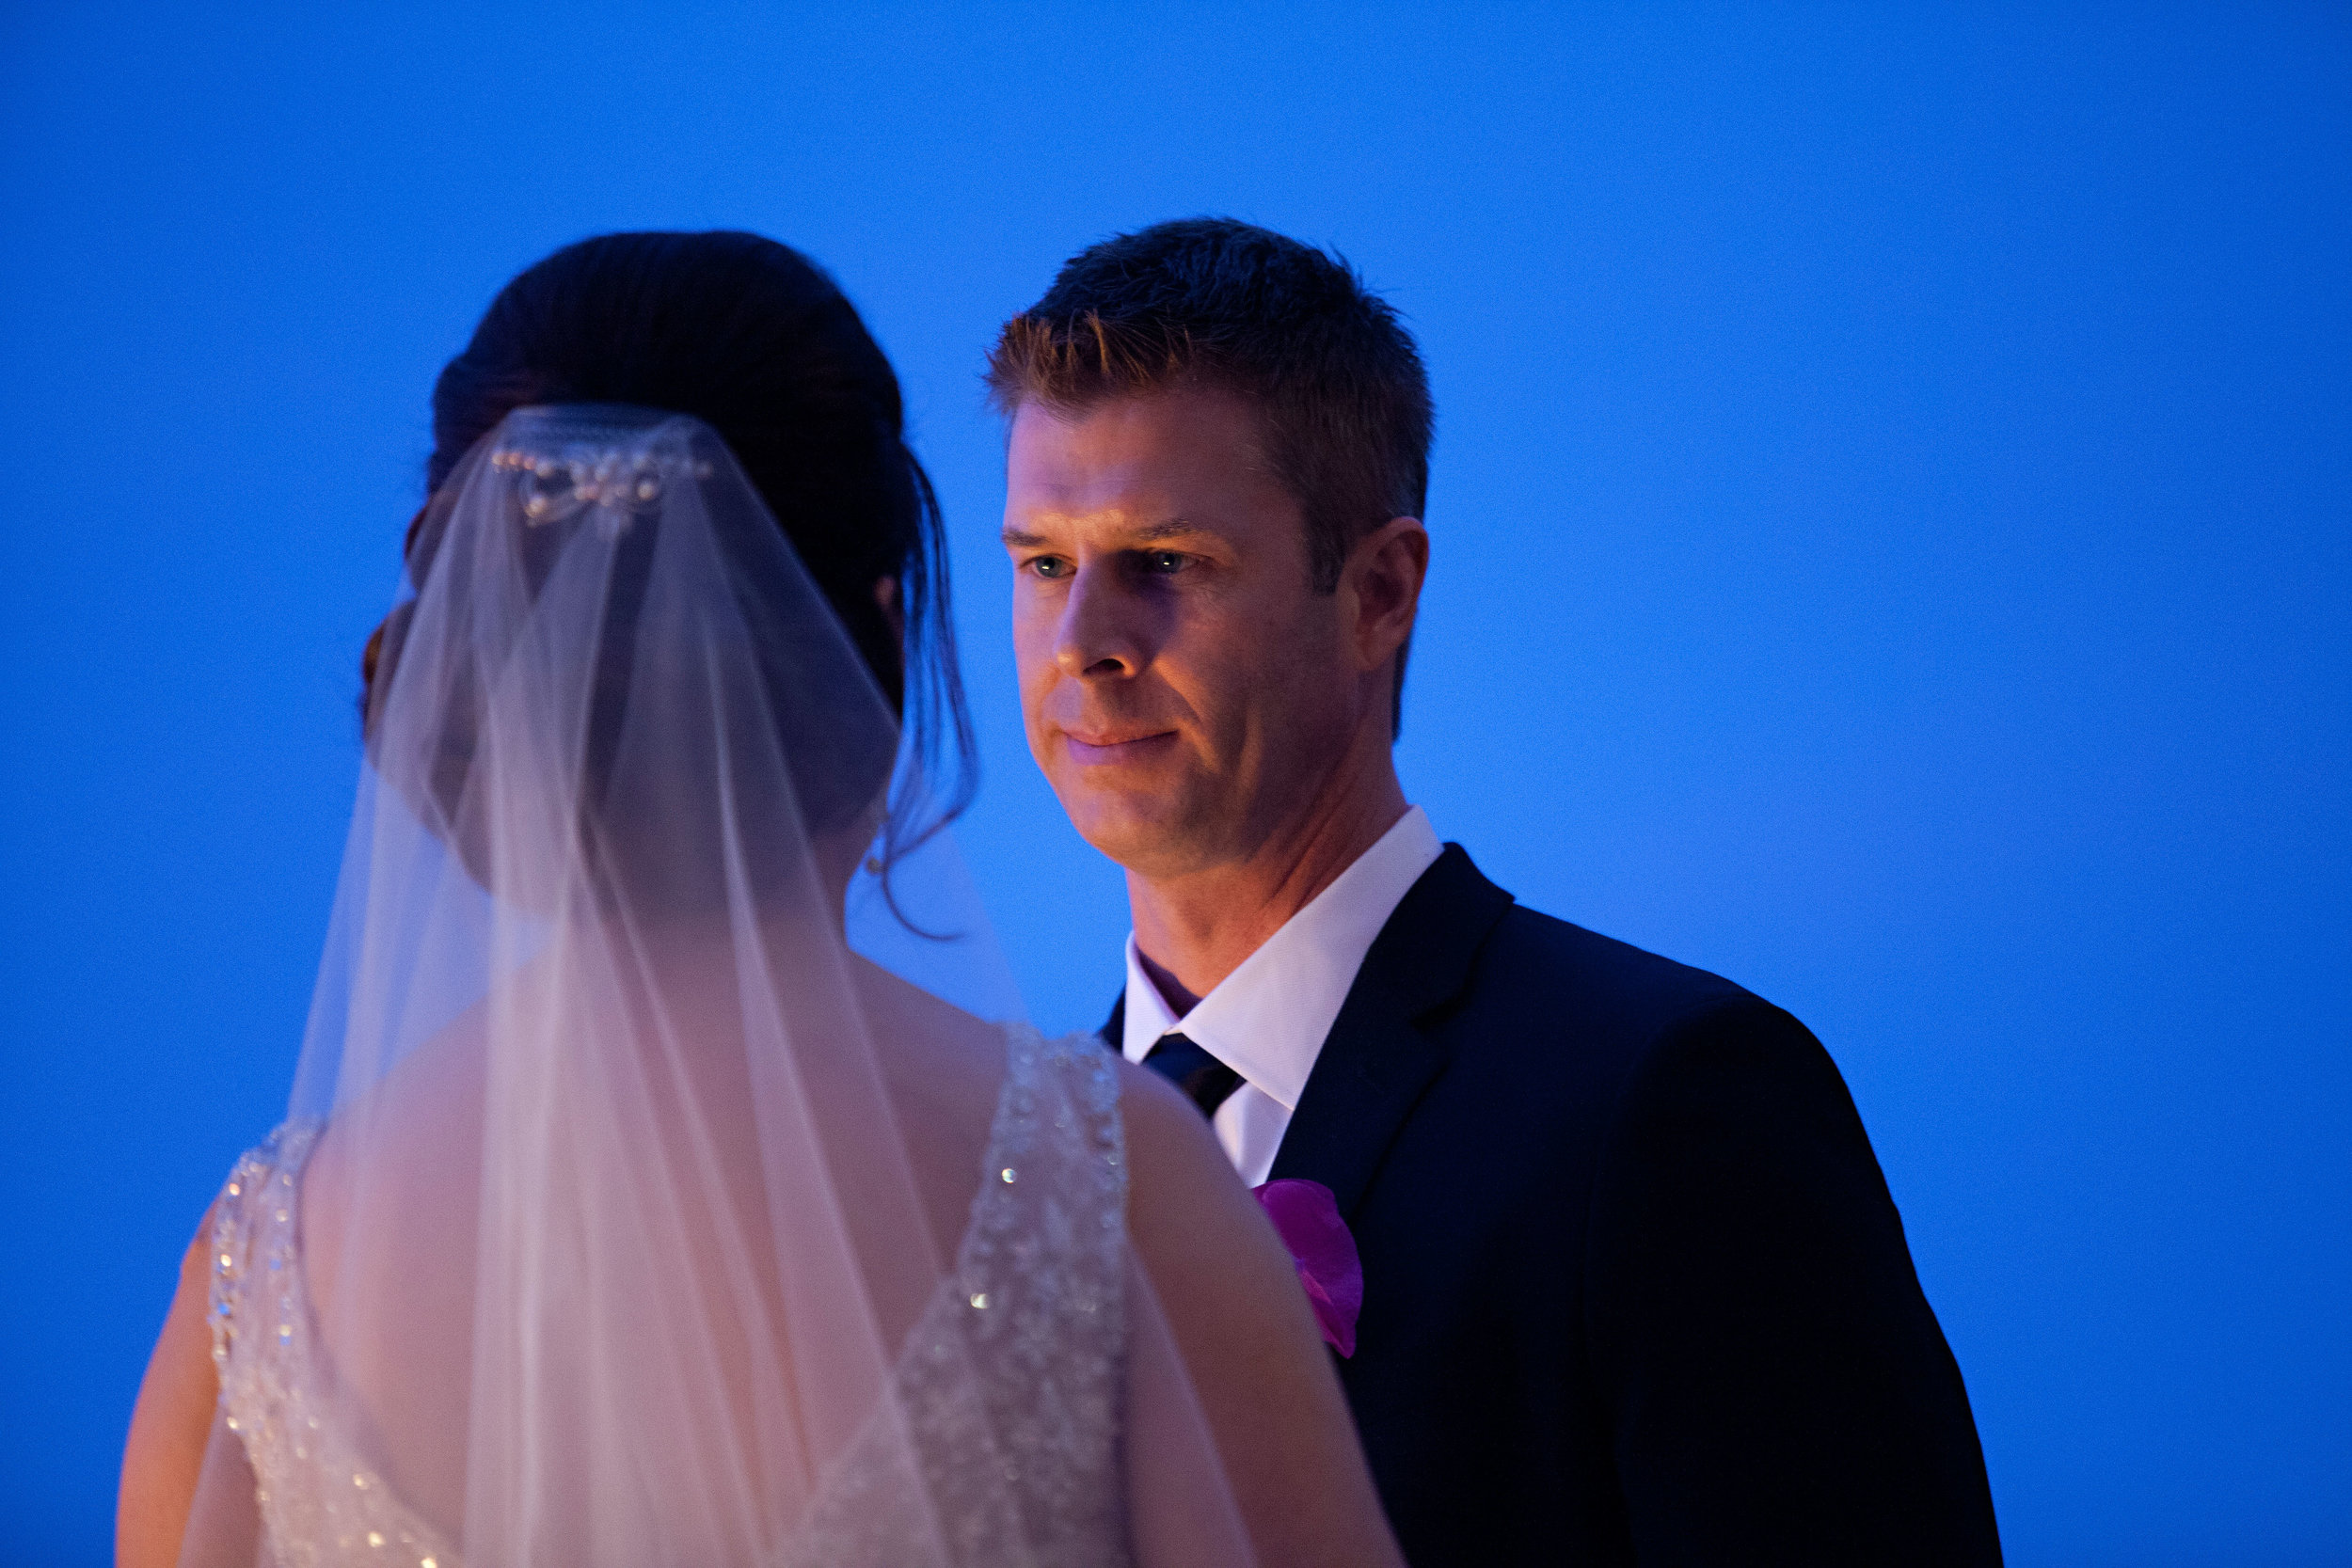 16 bride and groom candid photos cnadid poses bride and groom exchanging vows O Grace Photography Life Design Events.jpg